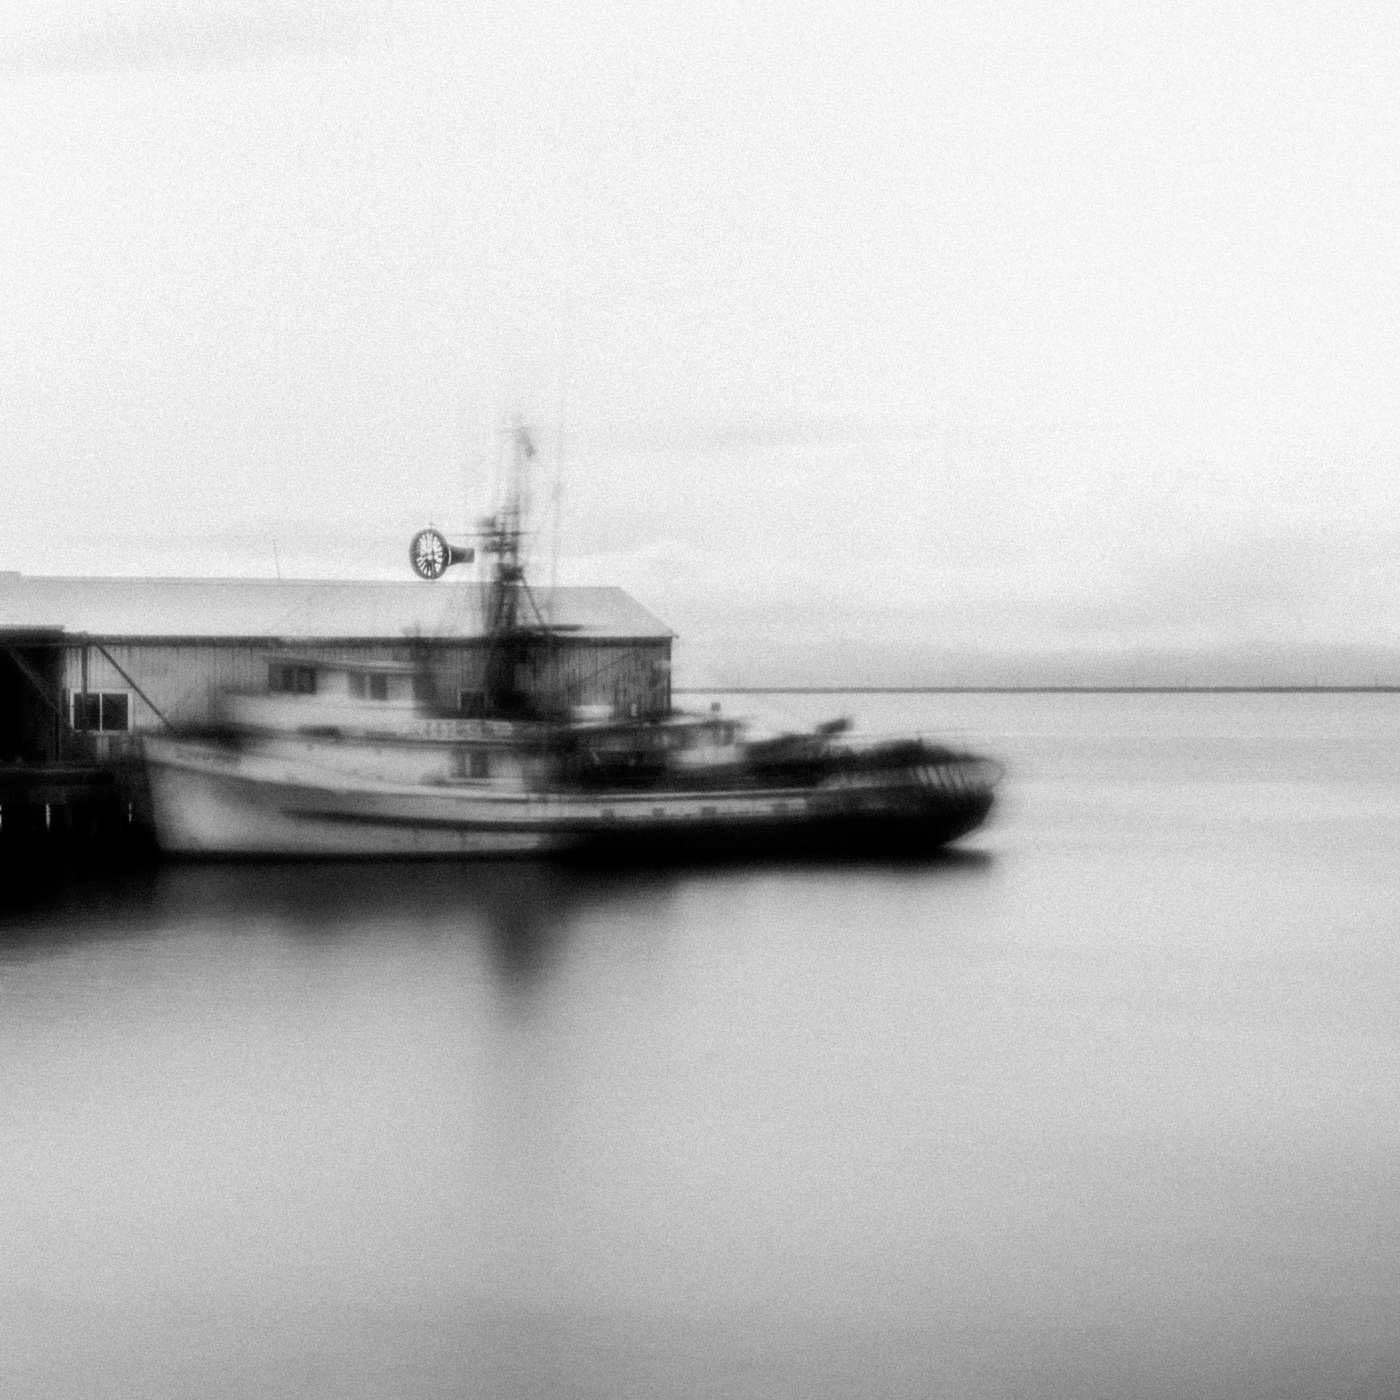 Boat, Port Angeles, May 2017